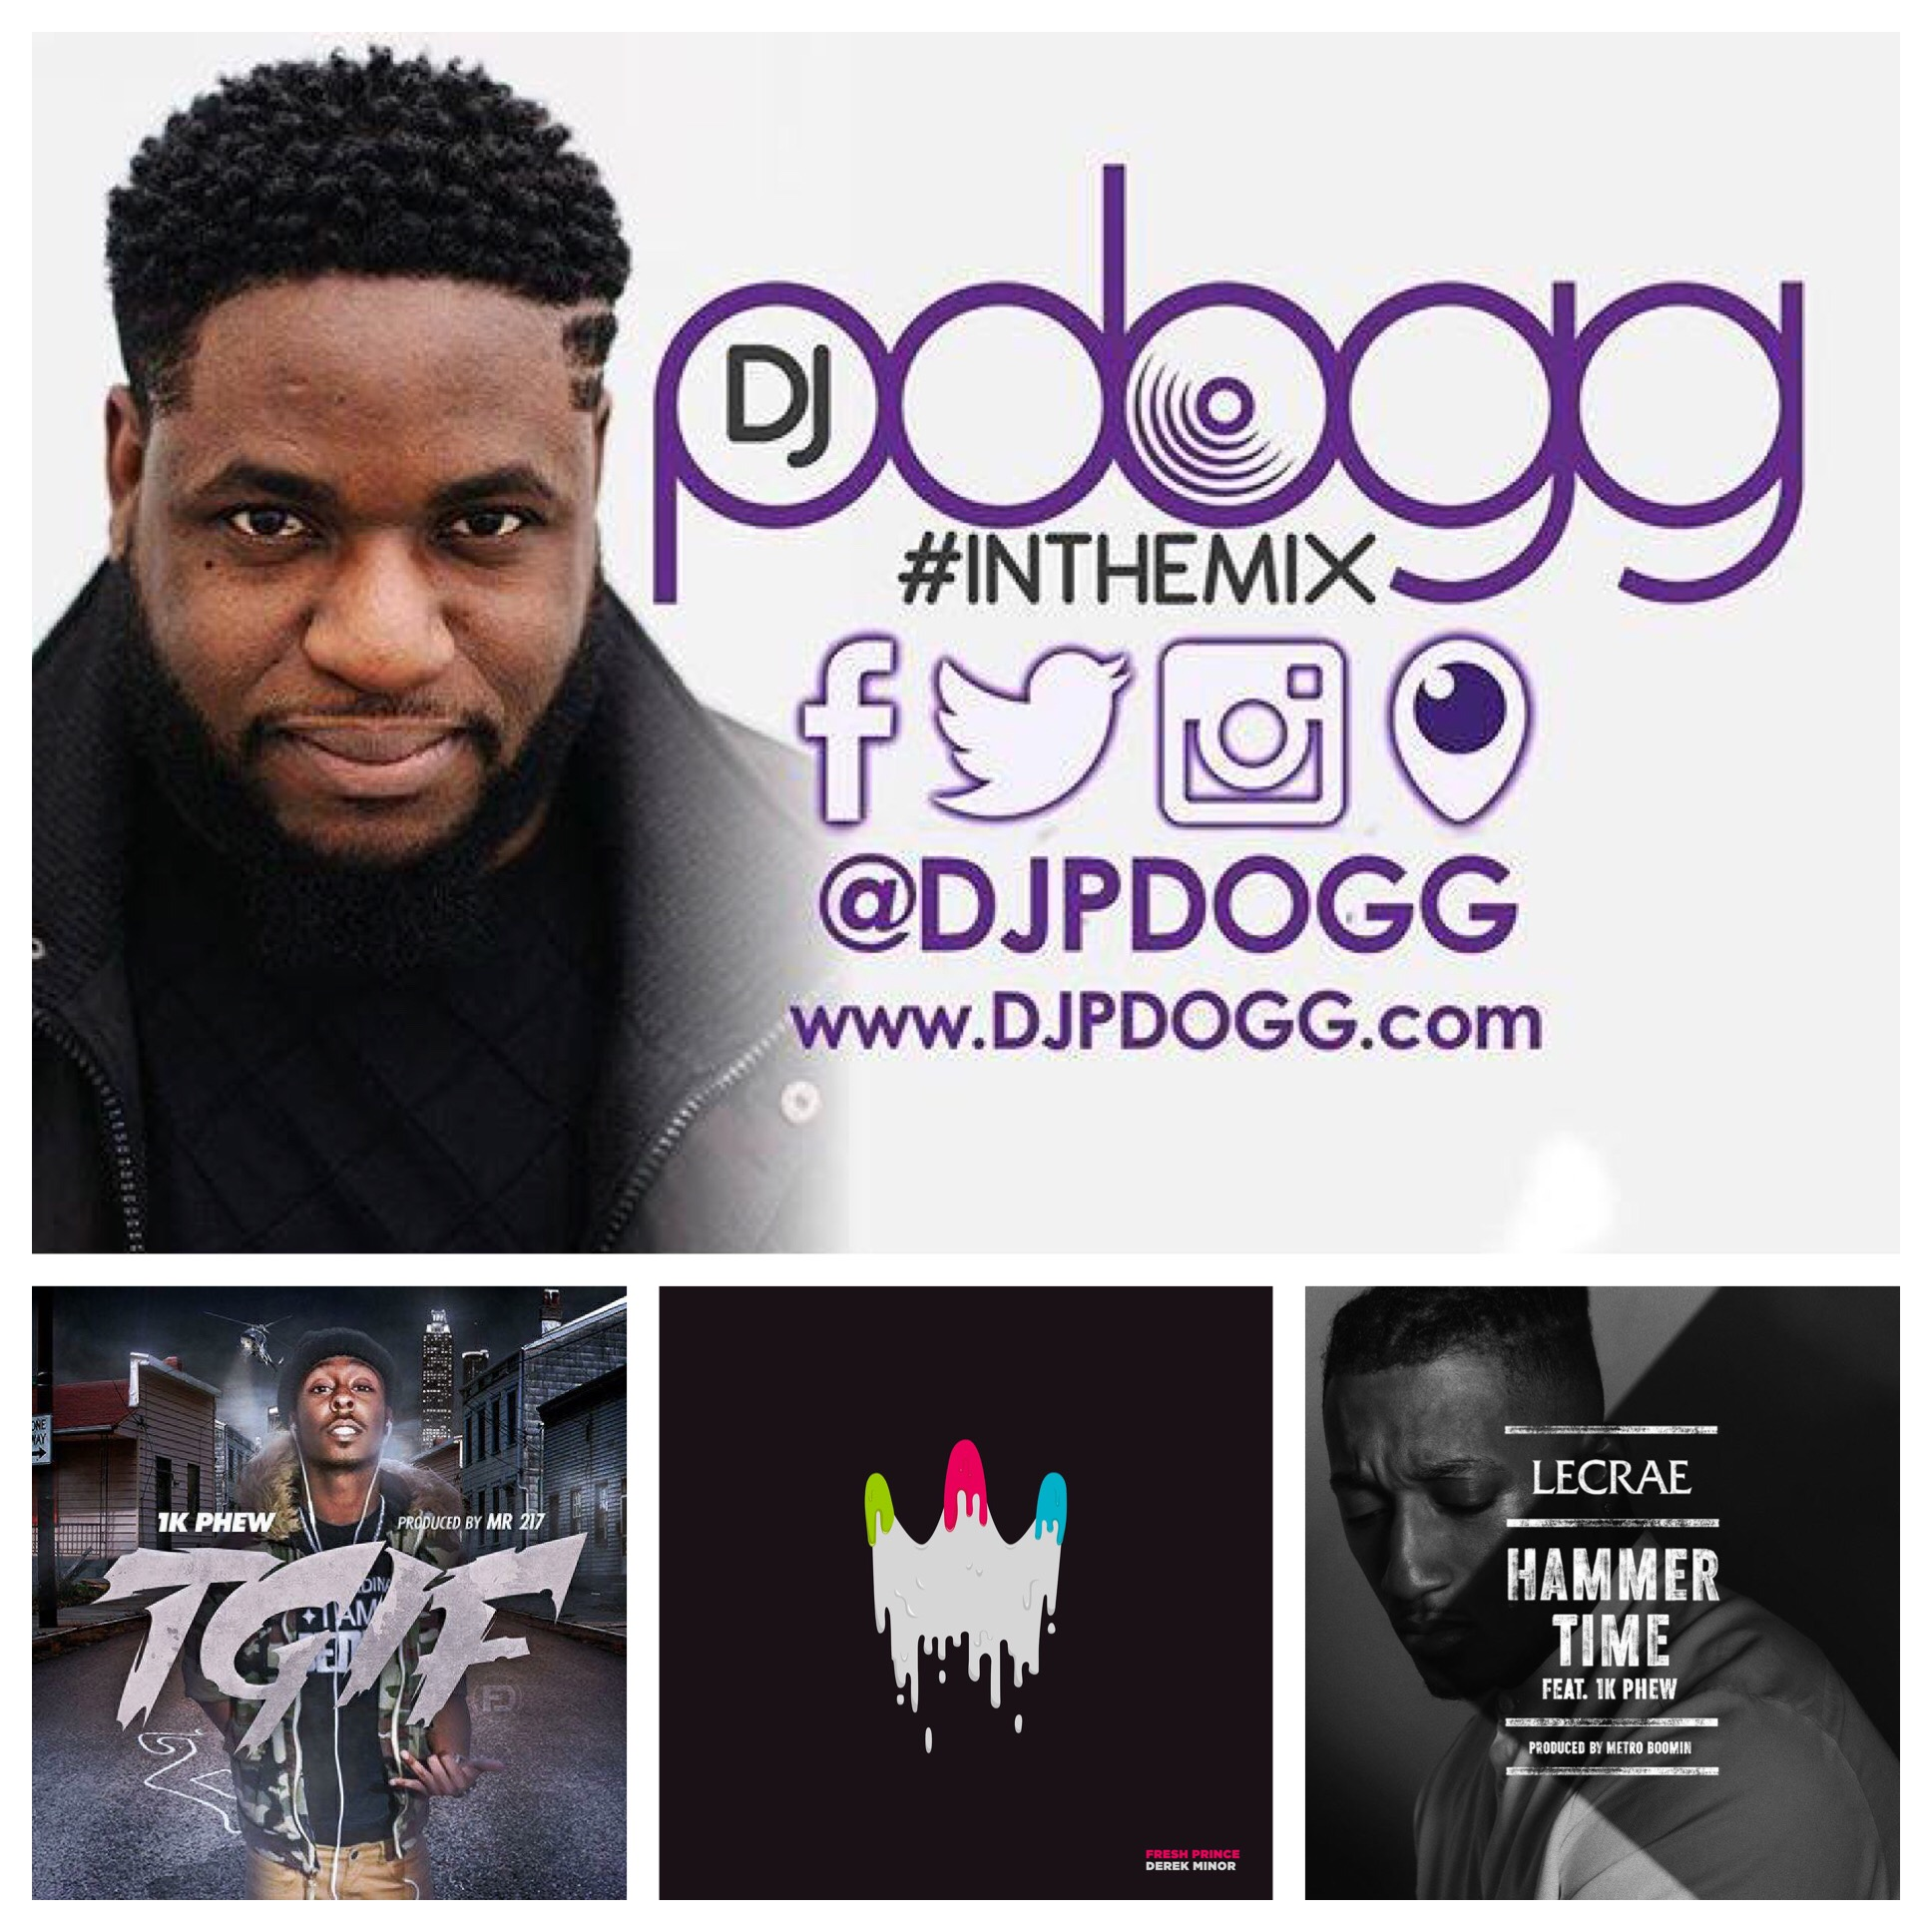 @Djpdogg #Inthemix Season 13 Episode 19